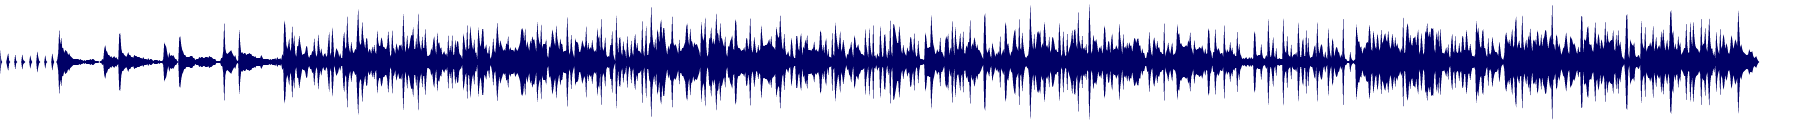 waveform of track #78190